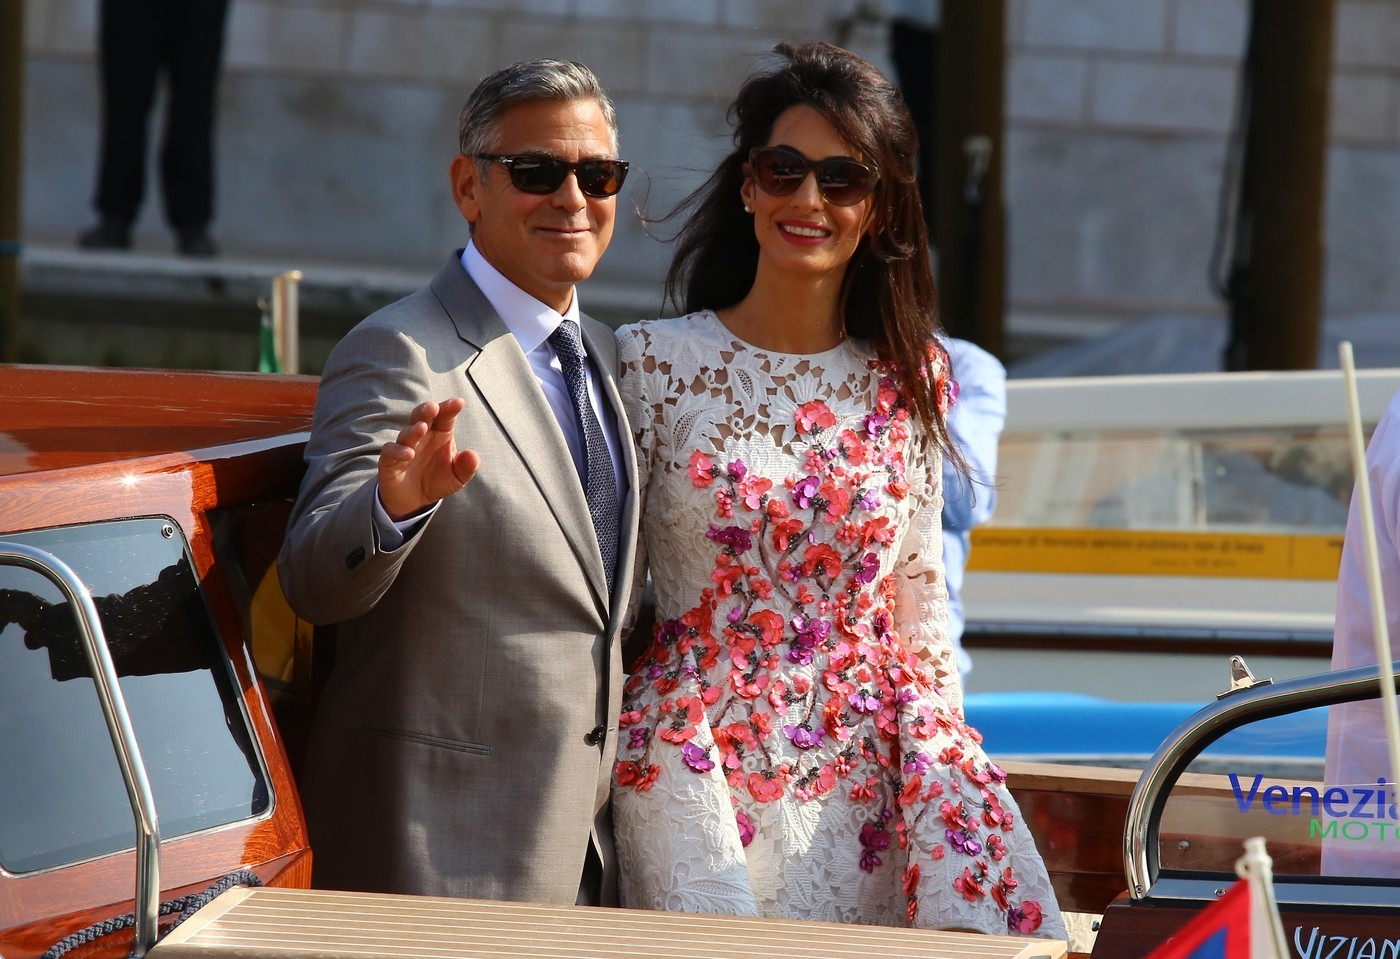 Introducing Mr & Mrs Clooney